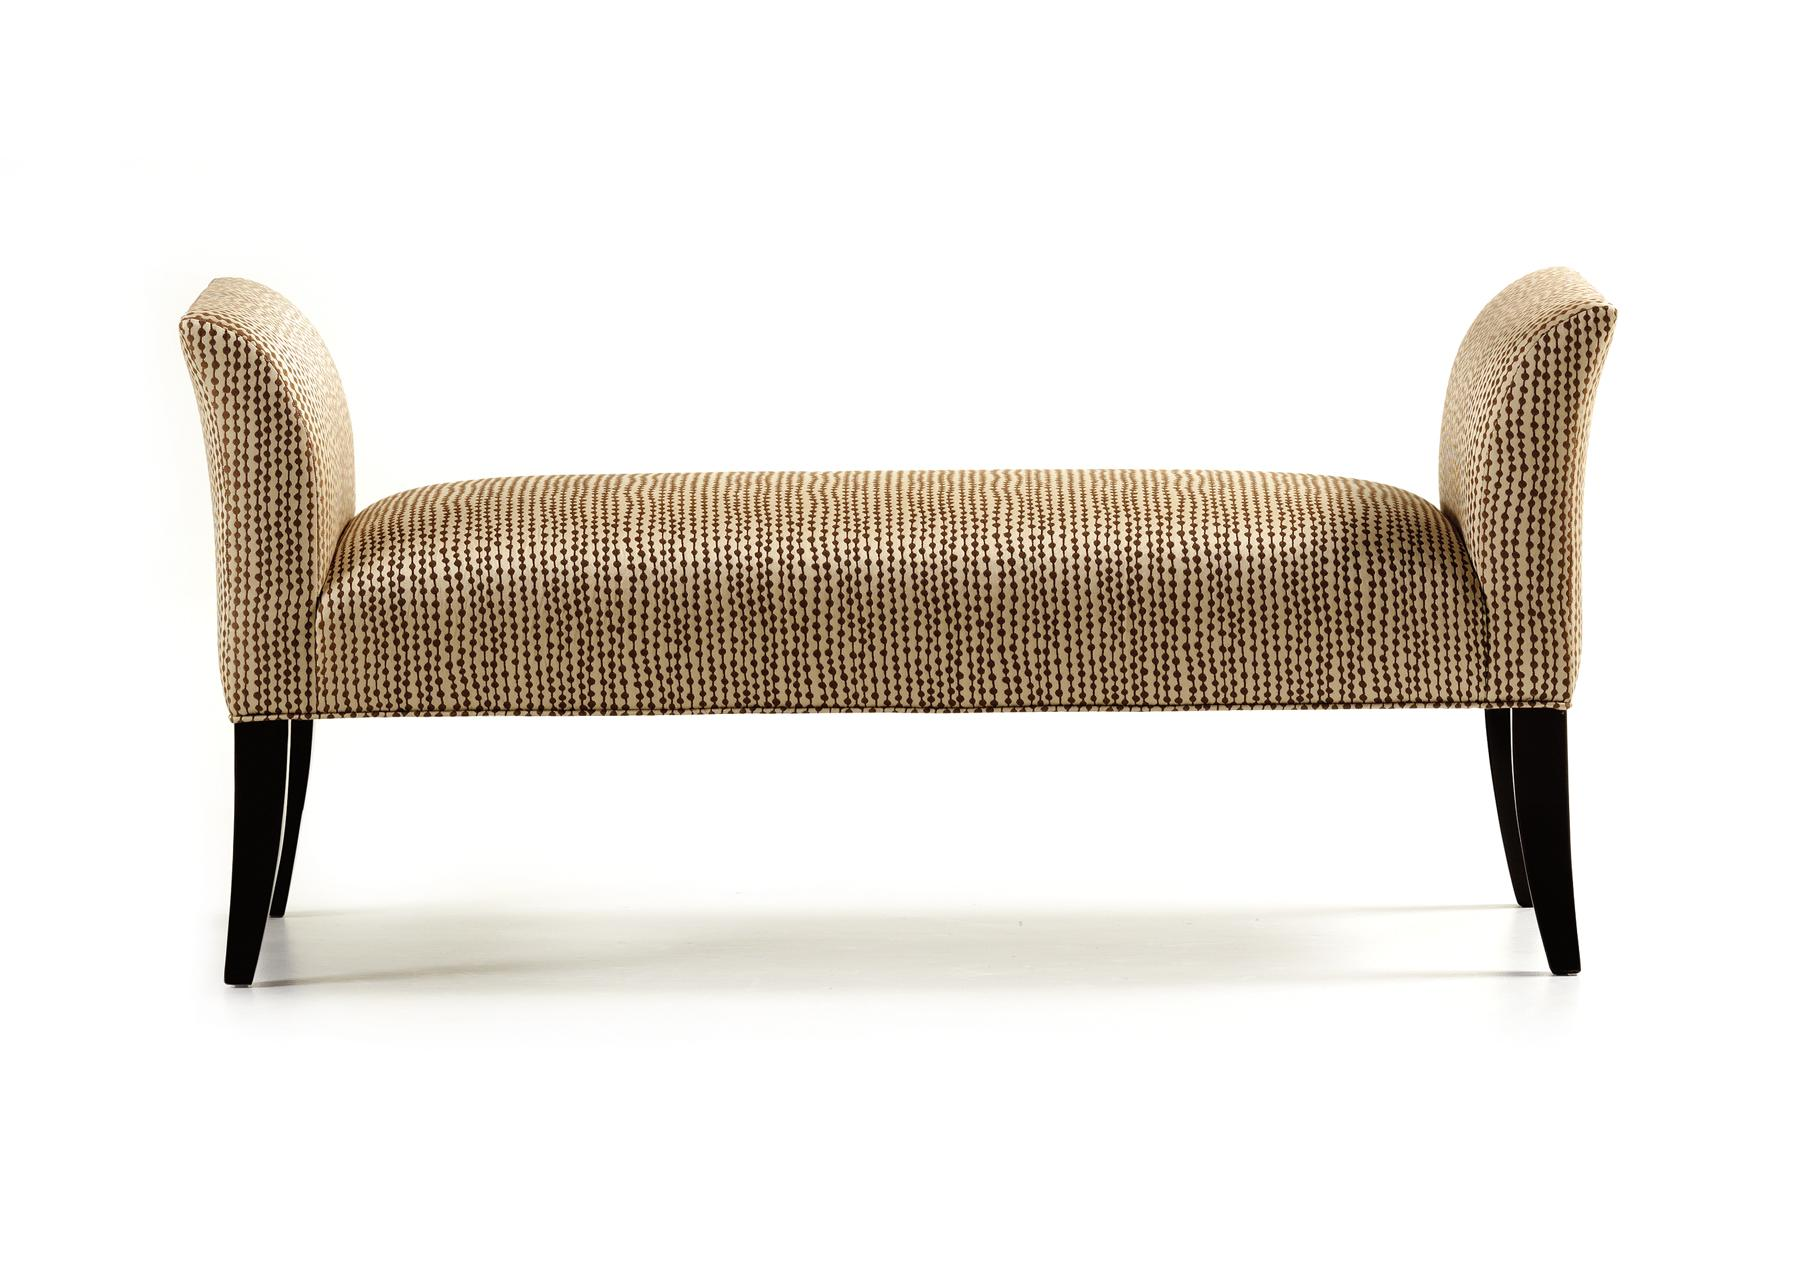 Fine Upholstered Accents Locke Bench    by Jessica Charles at Alison Craig Home Furnishings